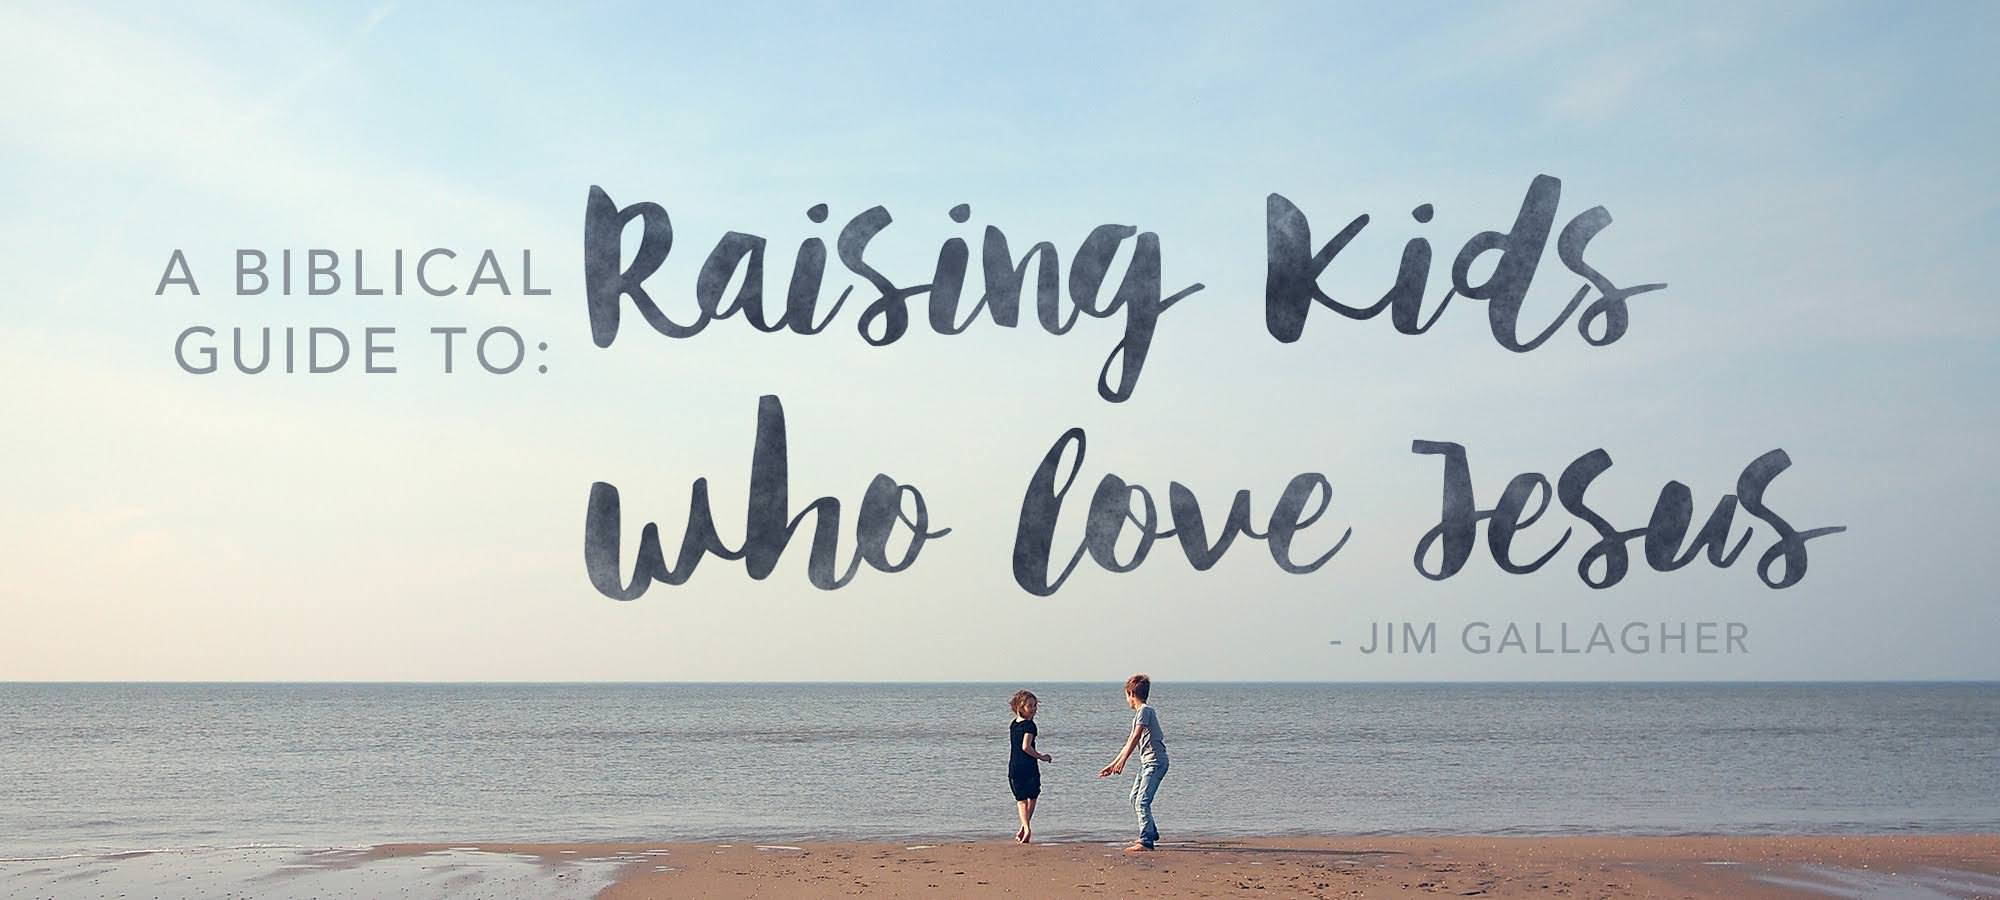 A Biblical Guide to Raising Kids who Love Jesus